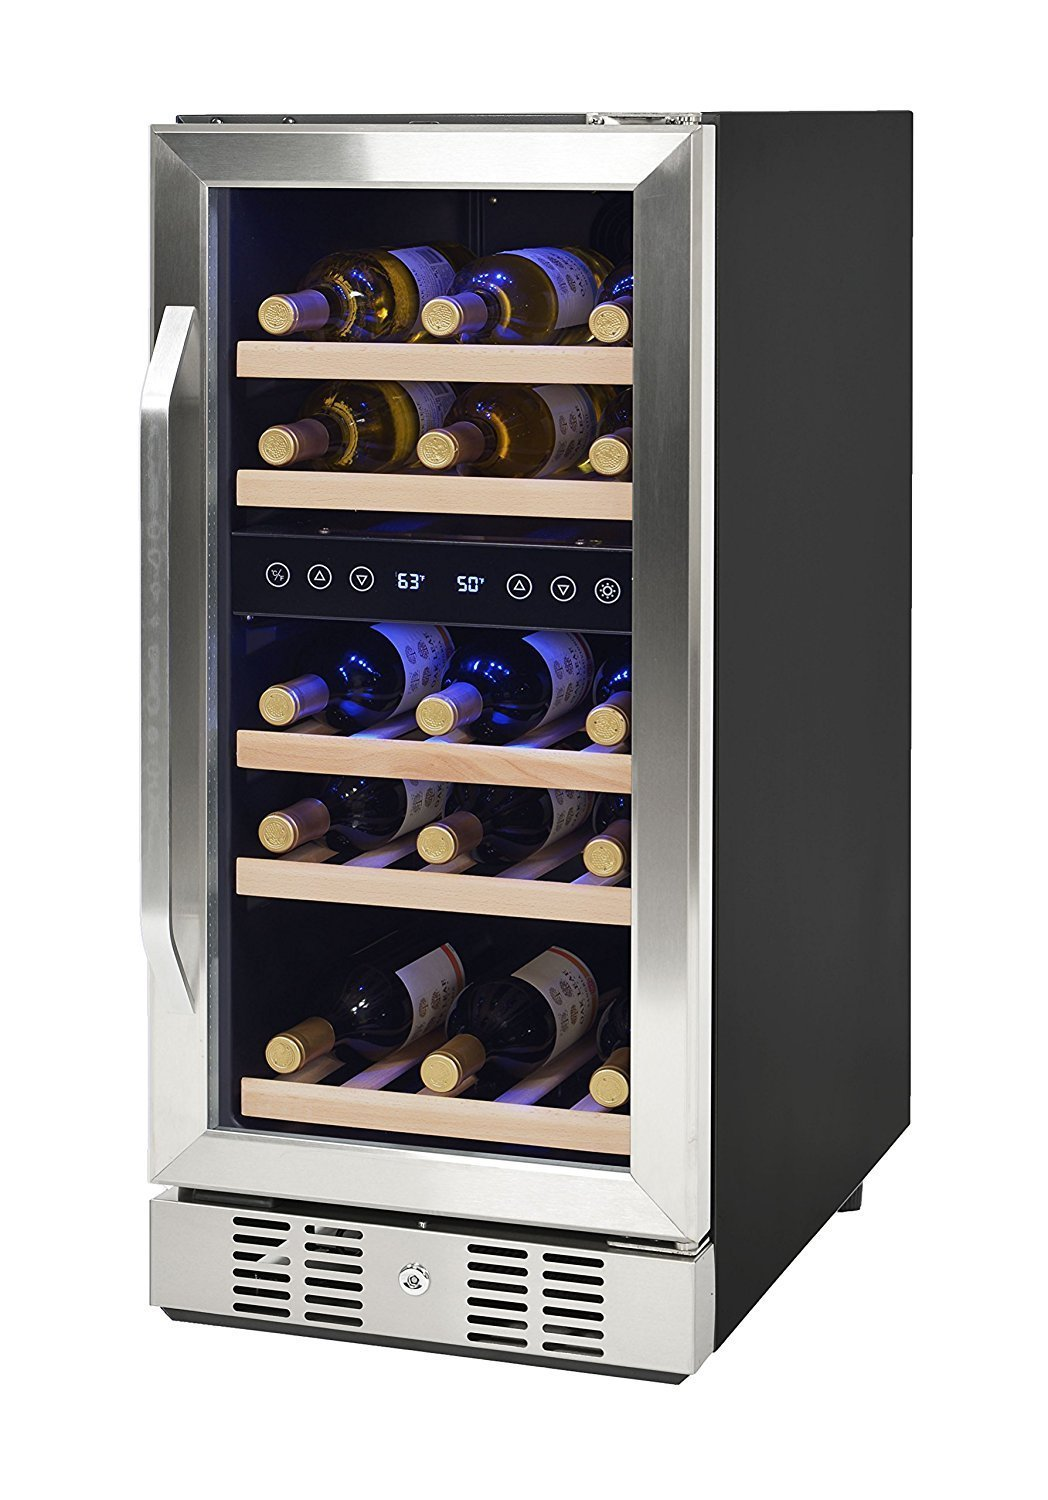 Refrigerator With Built In Wine Cooler Home Furniture Design